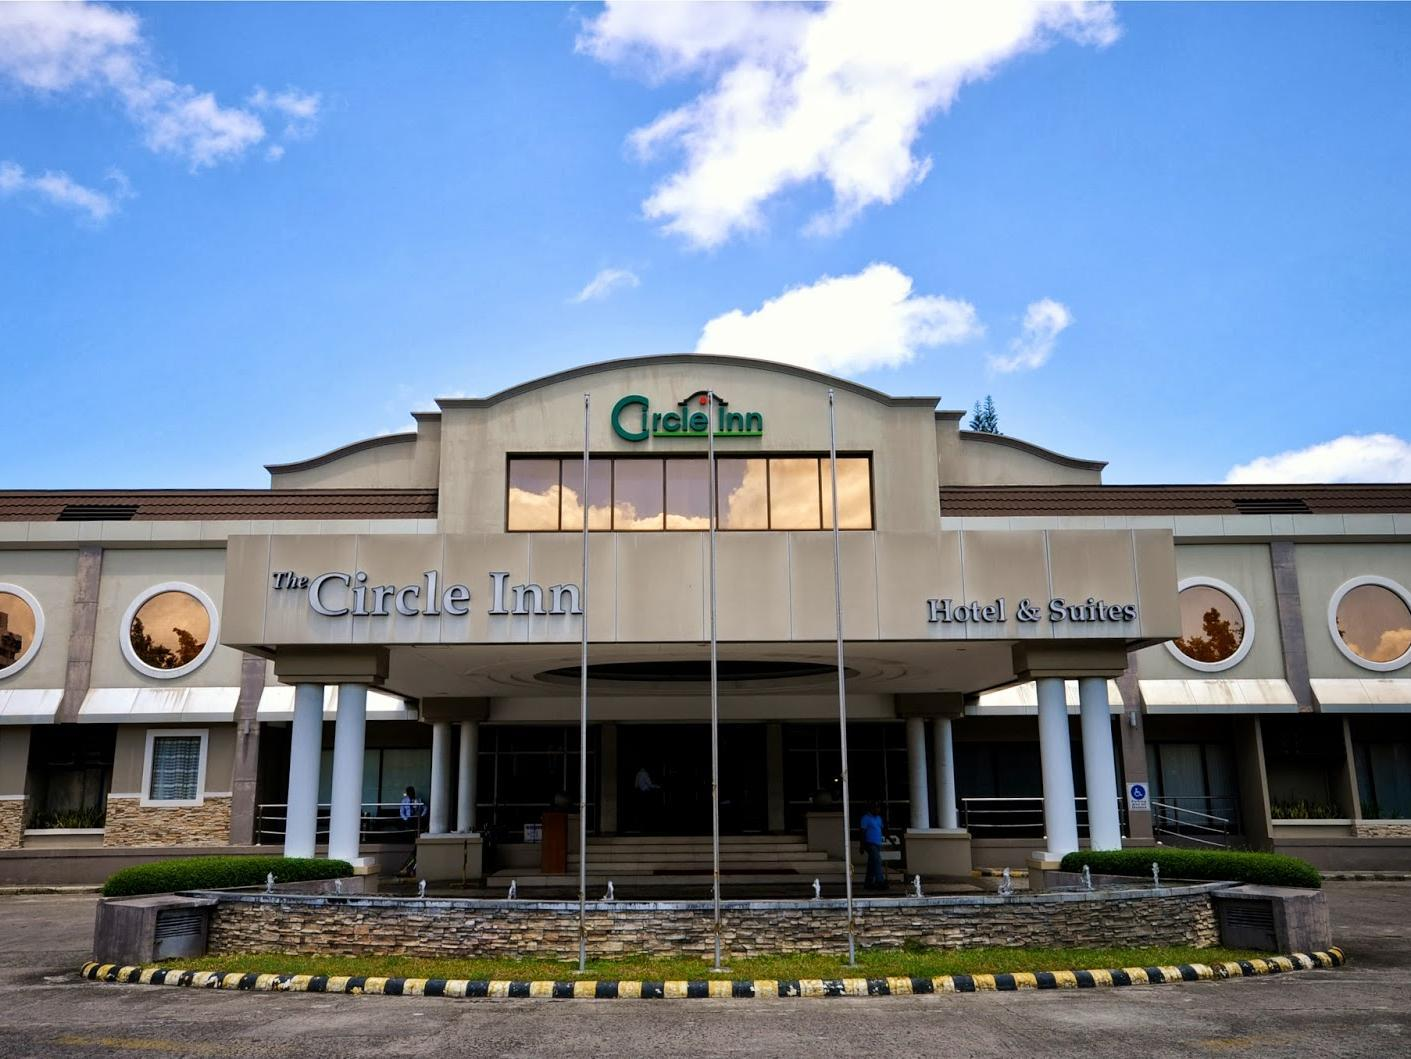 Hotell Circle Inn - Hotel   Suites